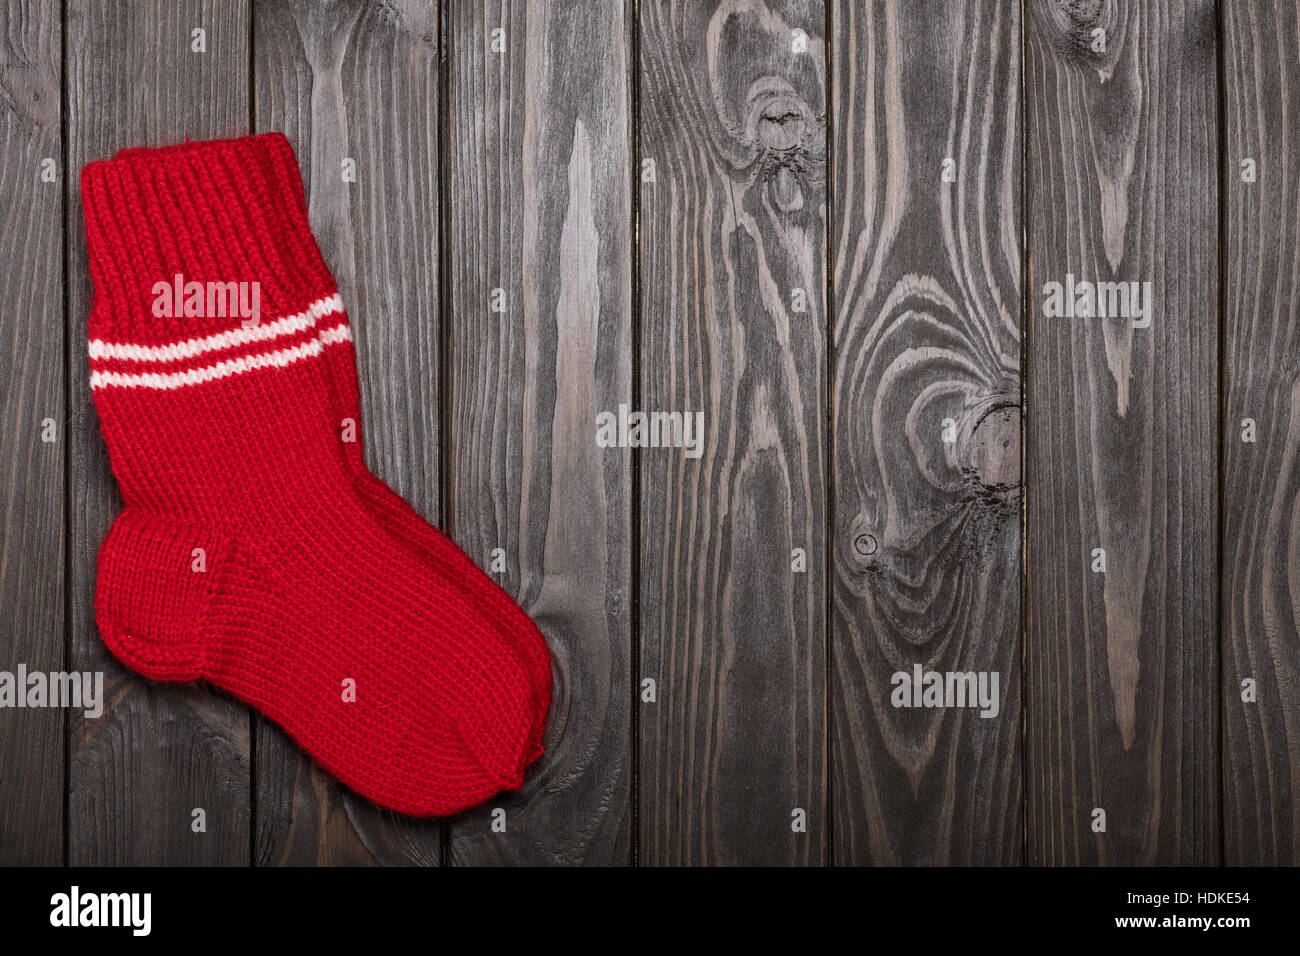 Knit red wool socks on dark wooden background. - Stock Image